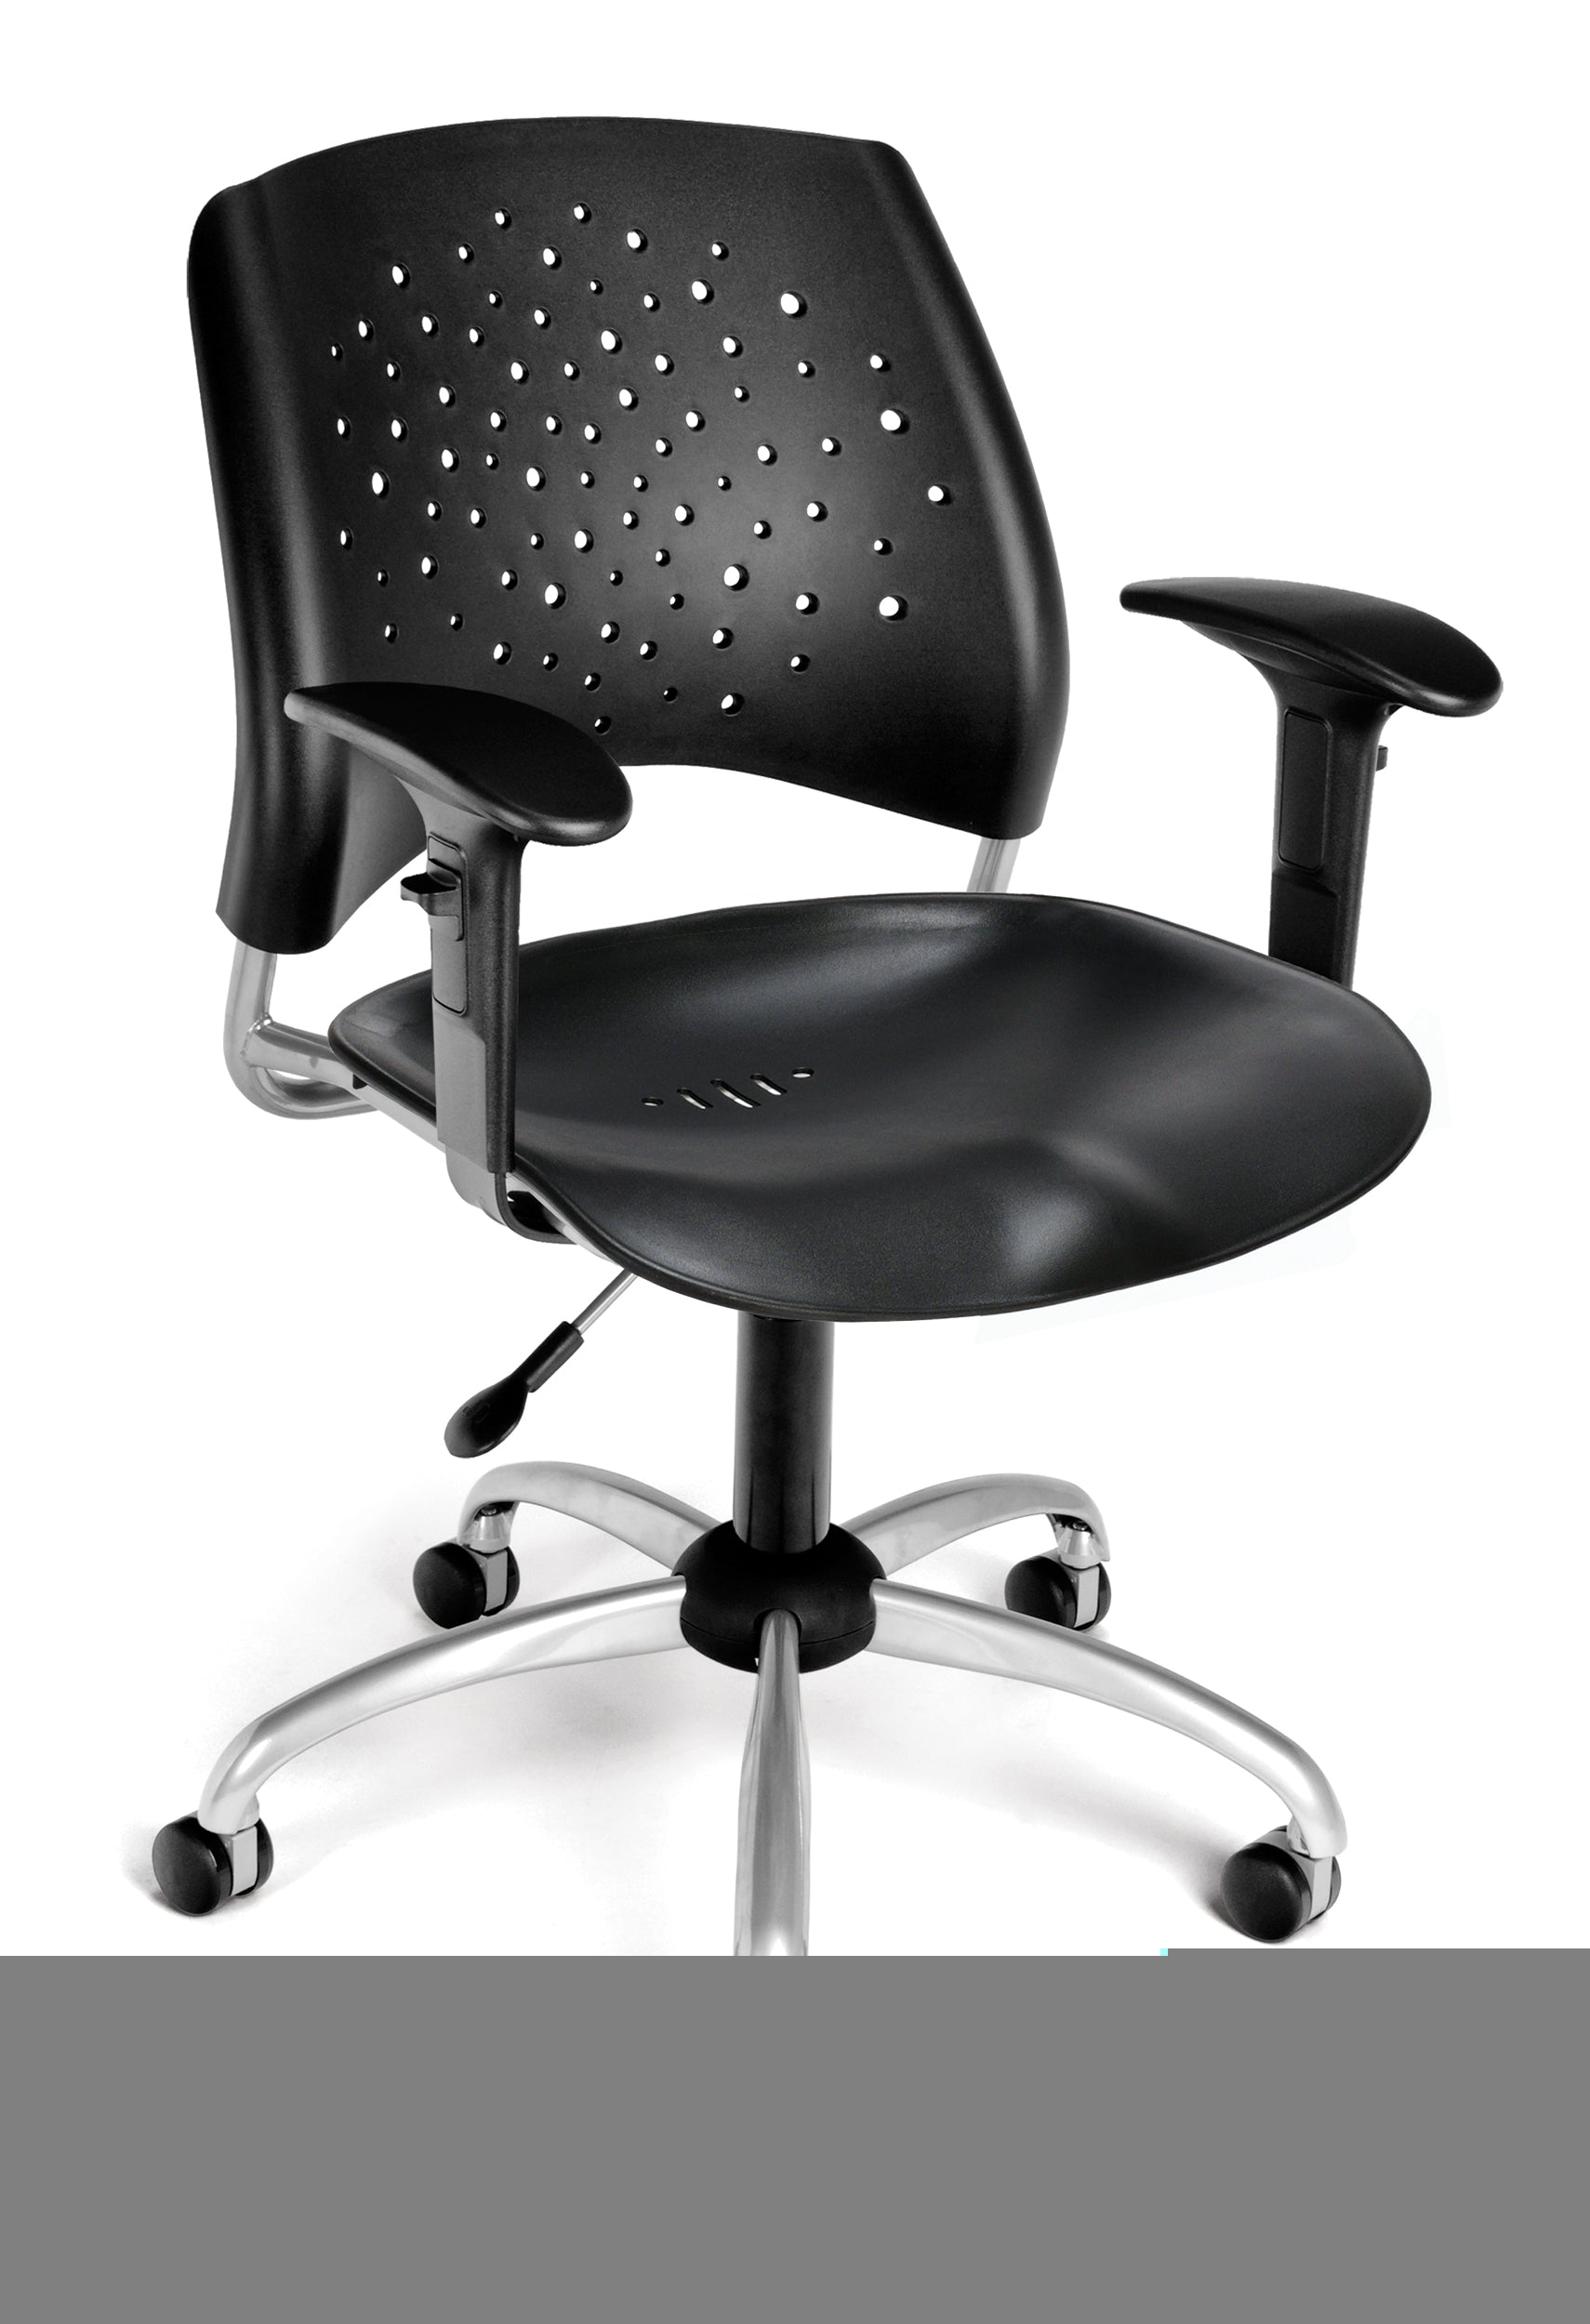 Ofminc Model 326-P-AA3 Stars Series Plastic Swivel Arms Chair